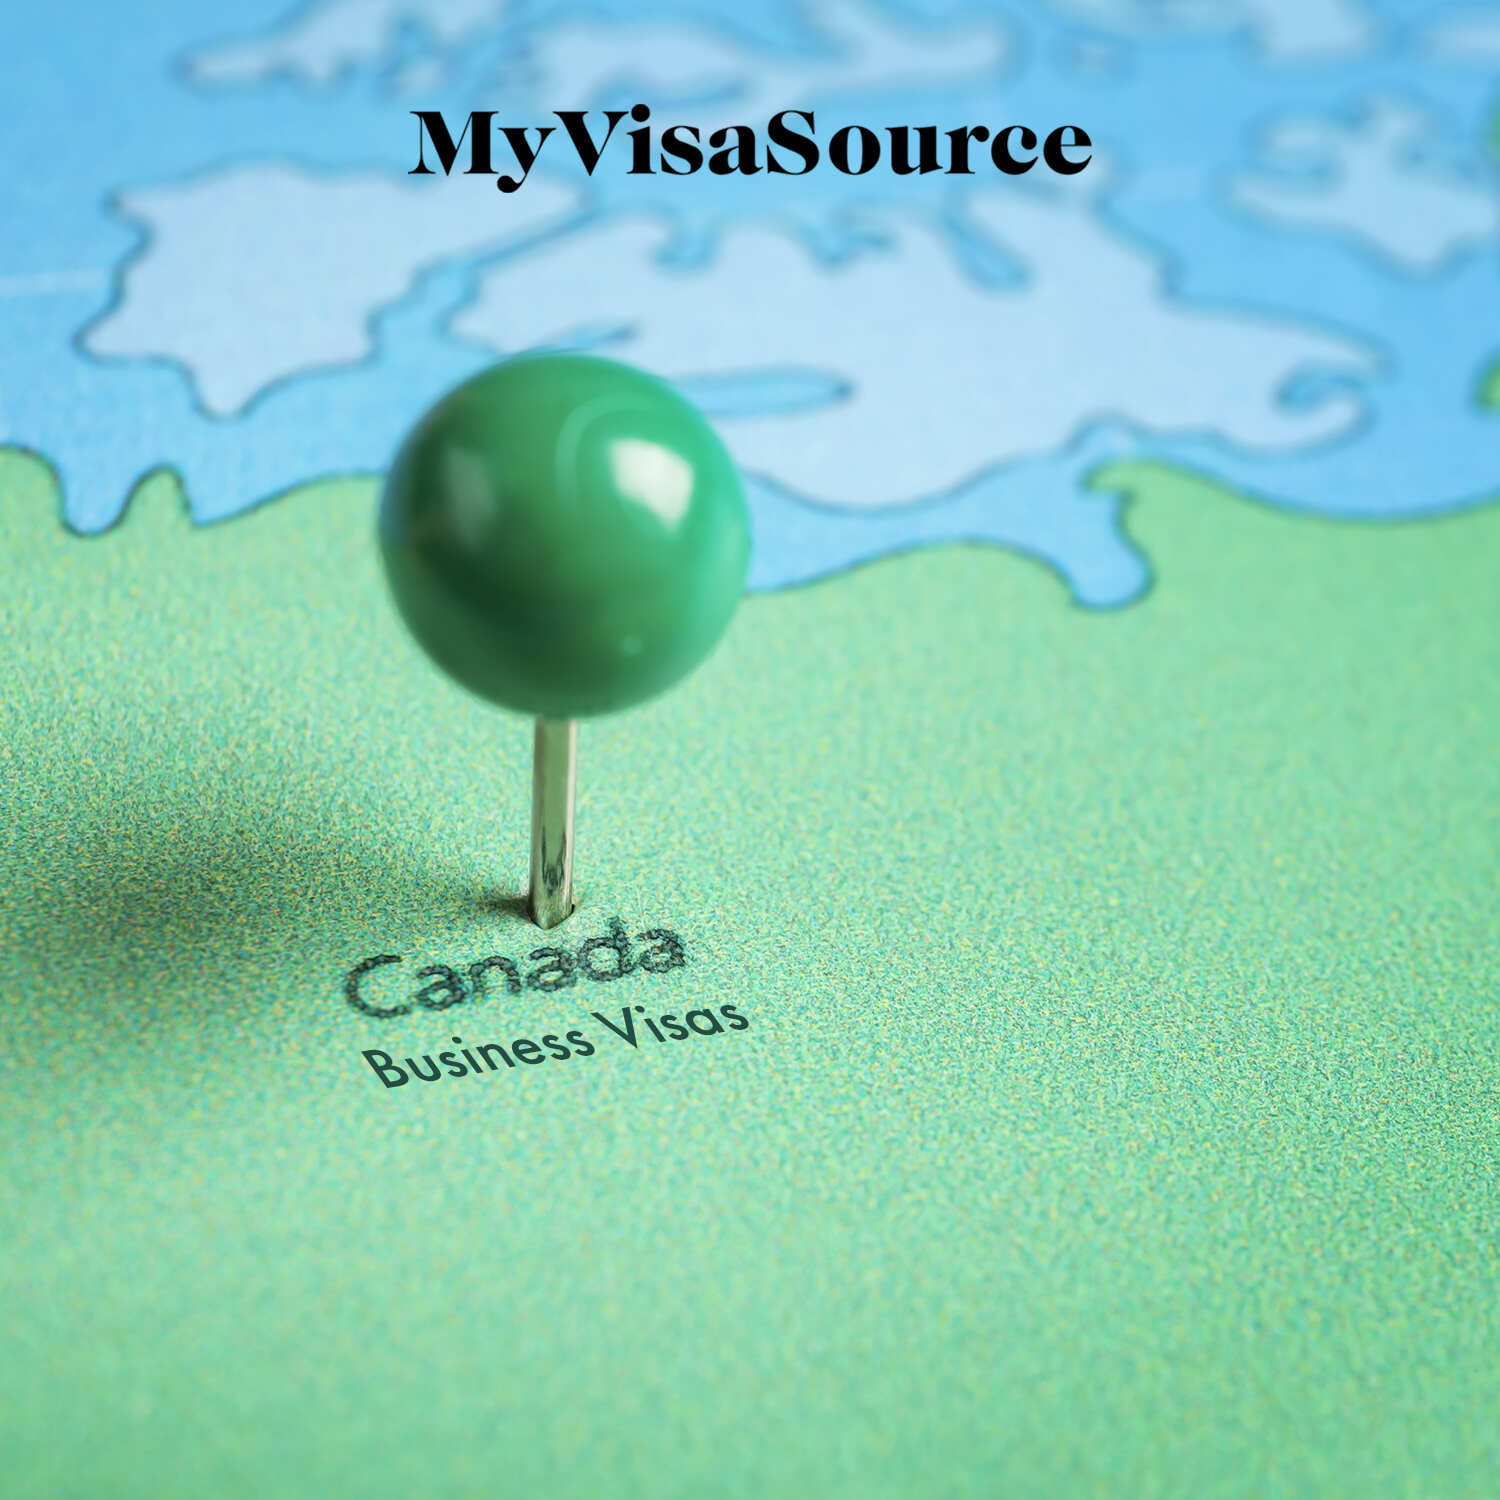 pin on map of canada with business visas written below my visa source